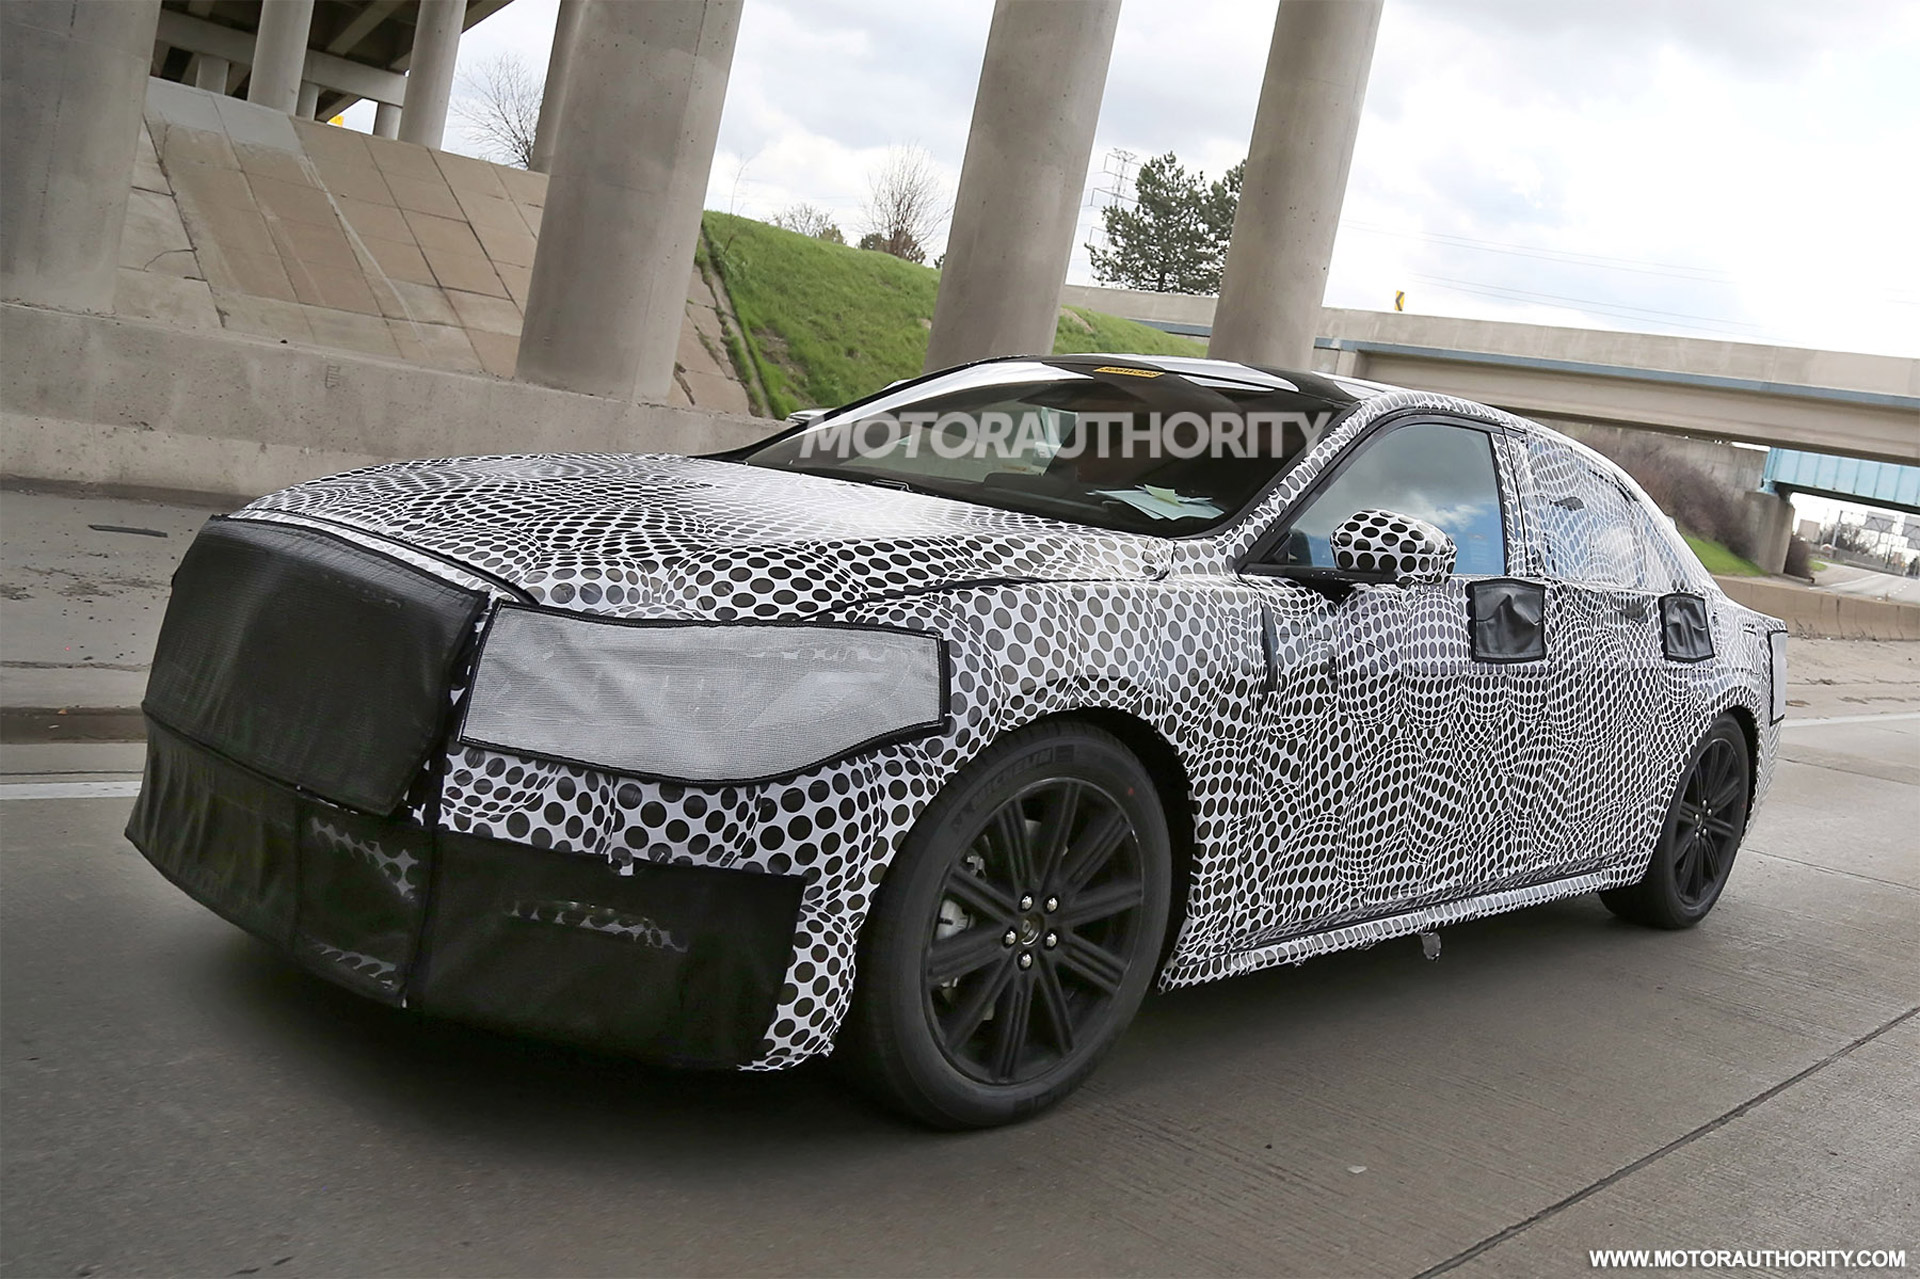 2016 - [Lincoln] Continental 2016-lincoln-continental-spy-shots--image-via-s-baldauf-sb-medien_100508895_h